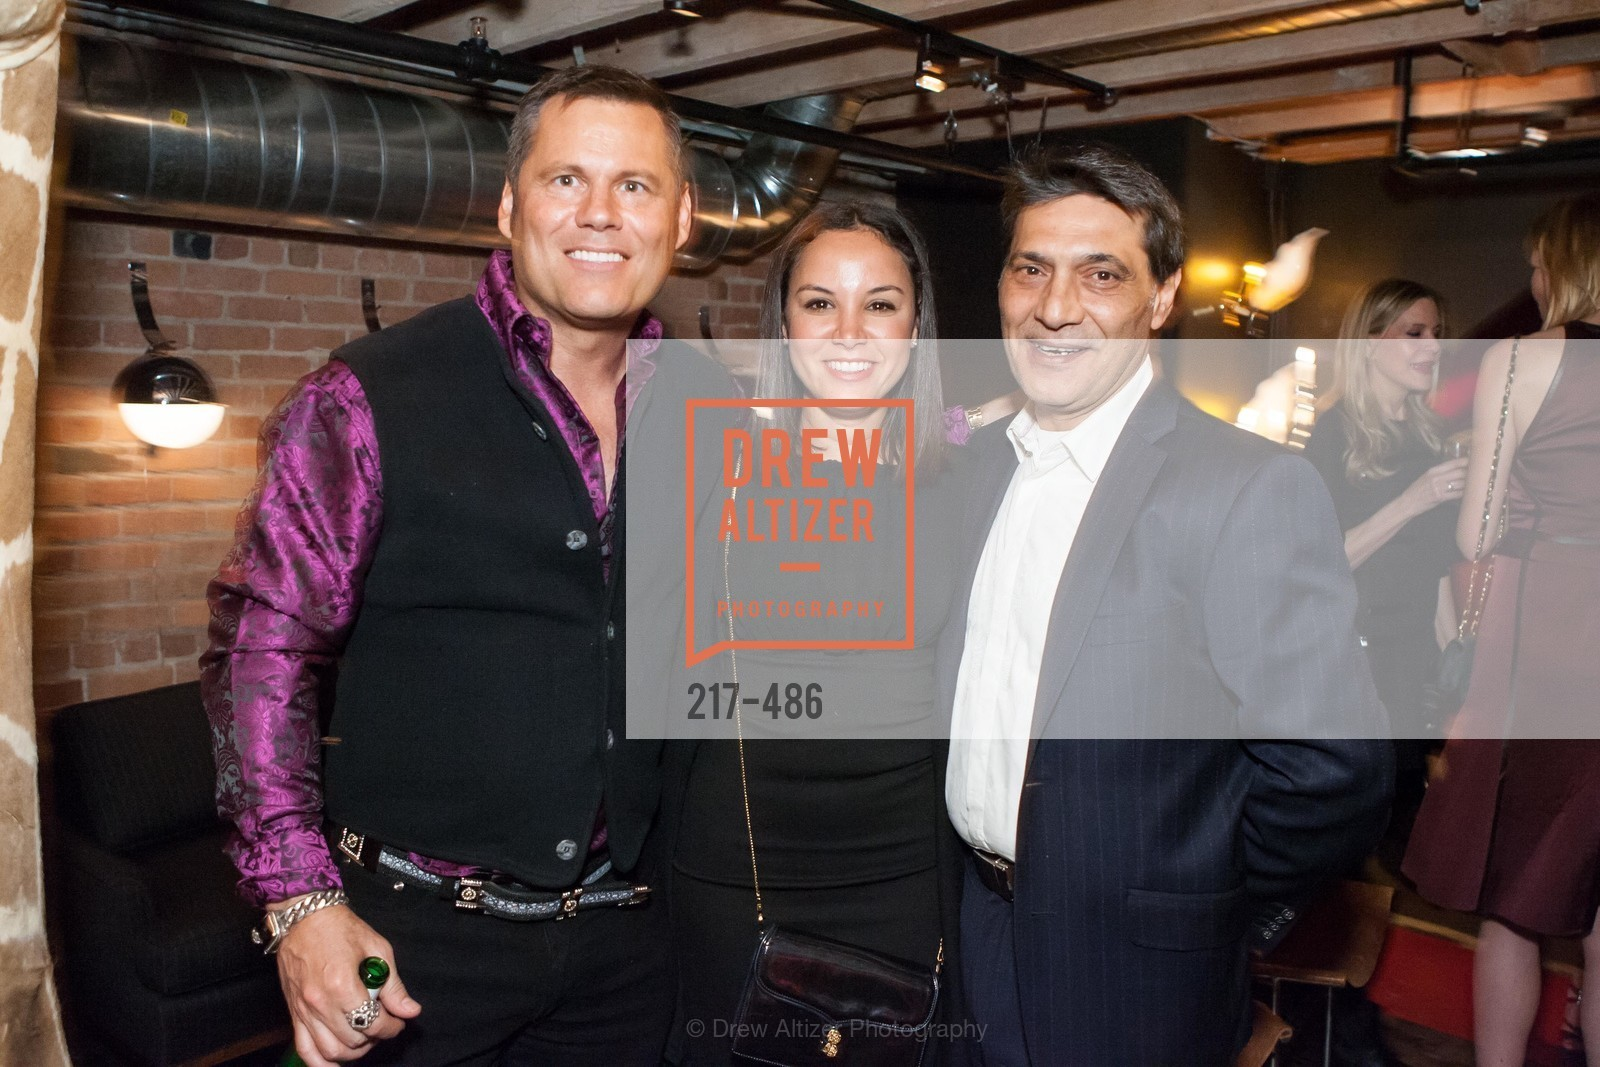 Mark Calvano, Bahya Oumil-Murad, Gus Murad, KEN FULK Presents All Fools Day, US. US, April 1st, 2014,Drew Altizer, Drew Altizer Photography, full-service agency, private events, San Francisco photographer, photographer california